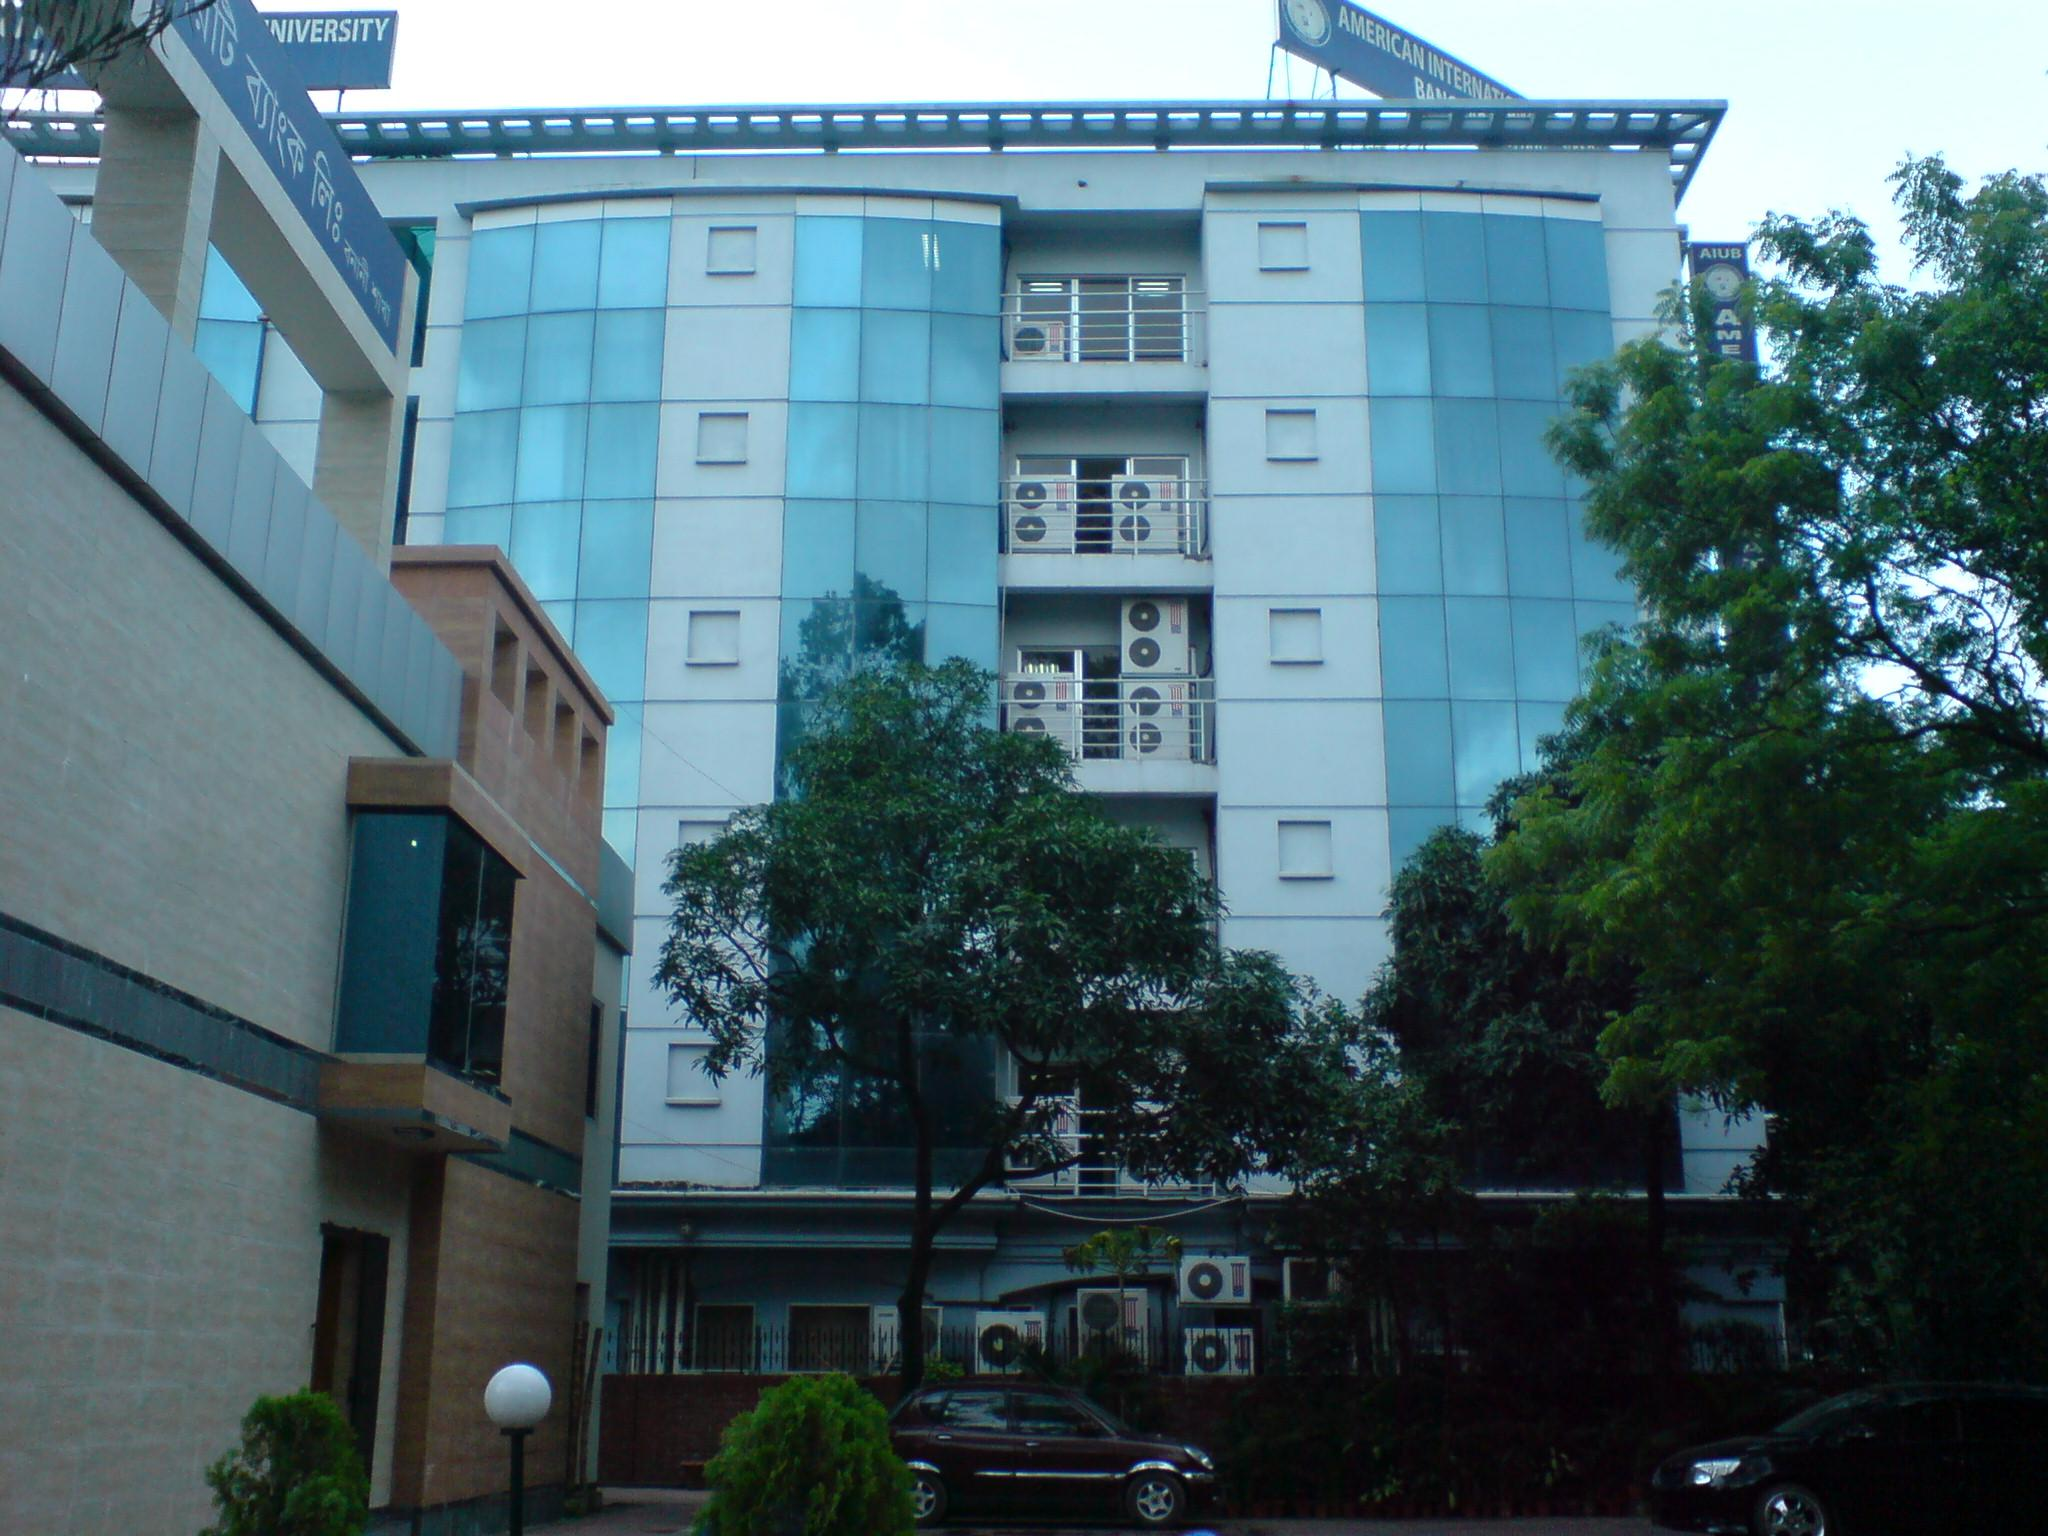 AIUB Campus from wikipedia